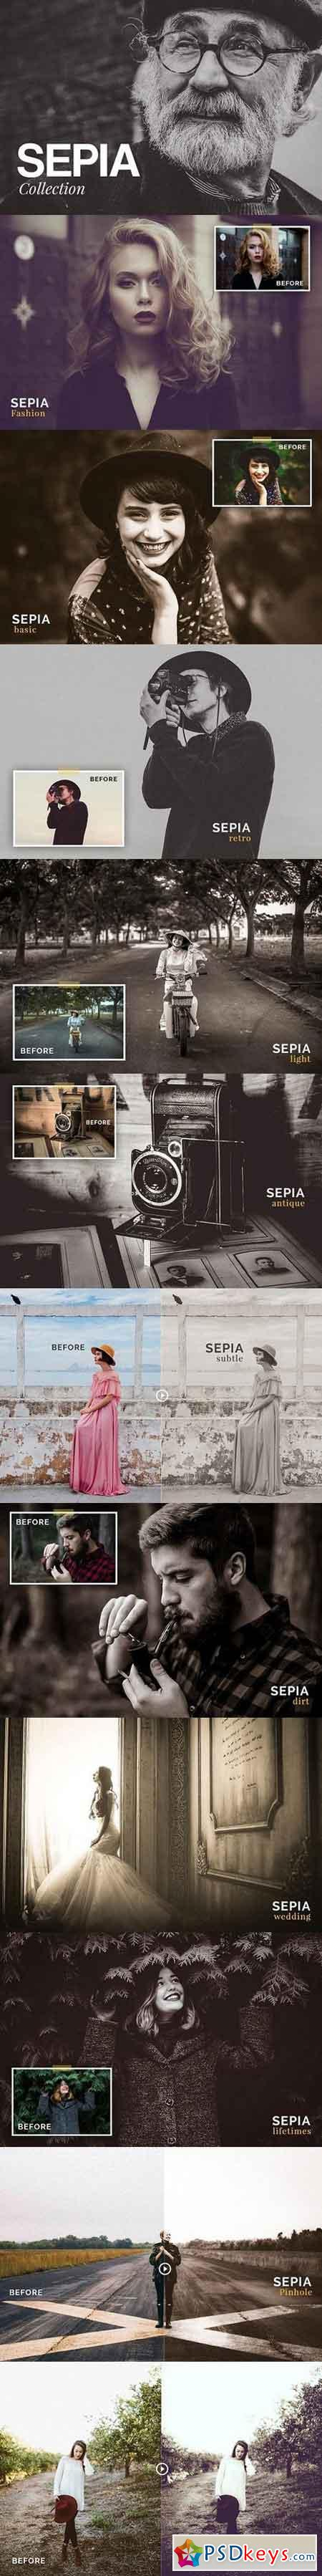 Sepia Collection - Lightroom Presets 1268389